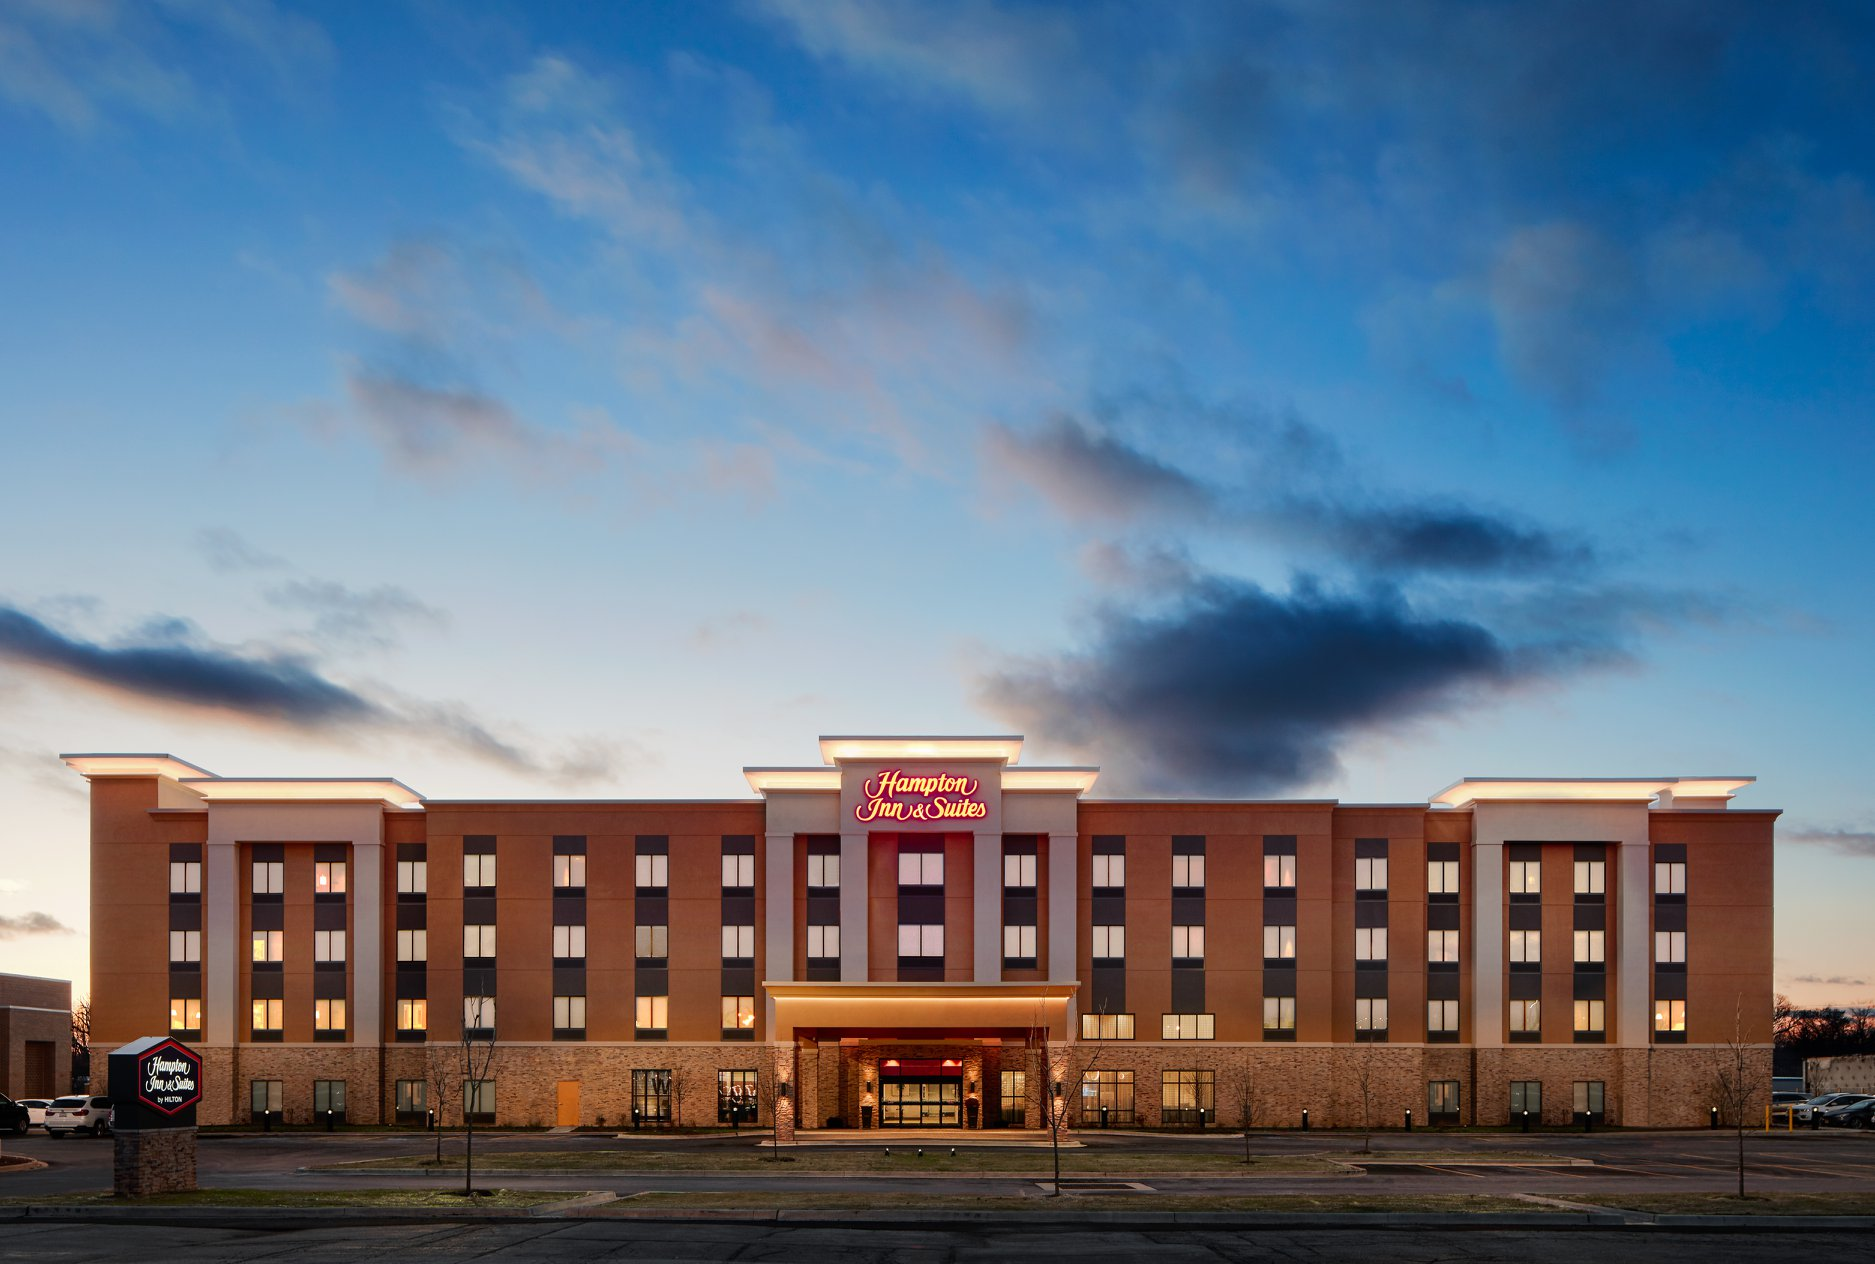 Hampton Inn & Suites Waukegan - Click to Enlarge